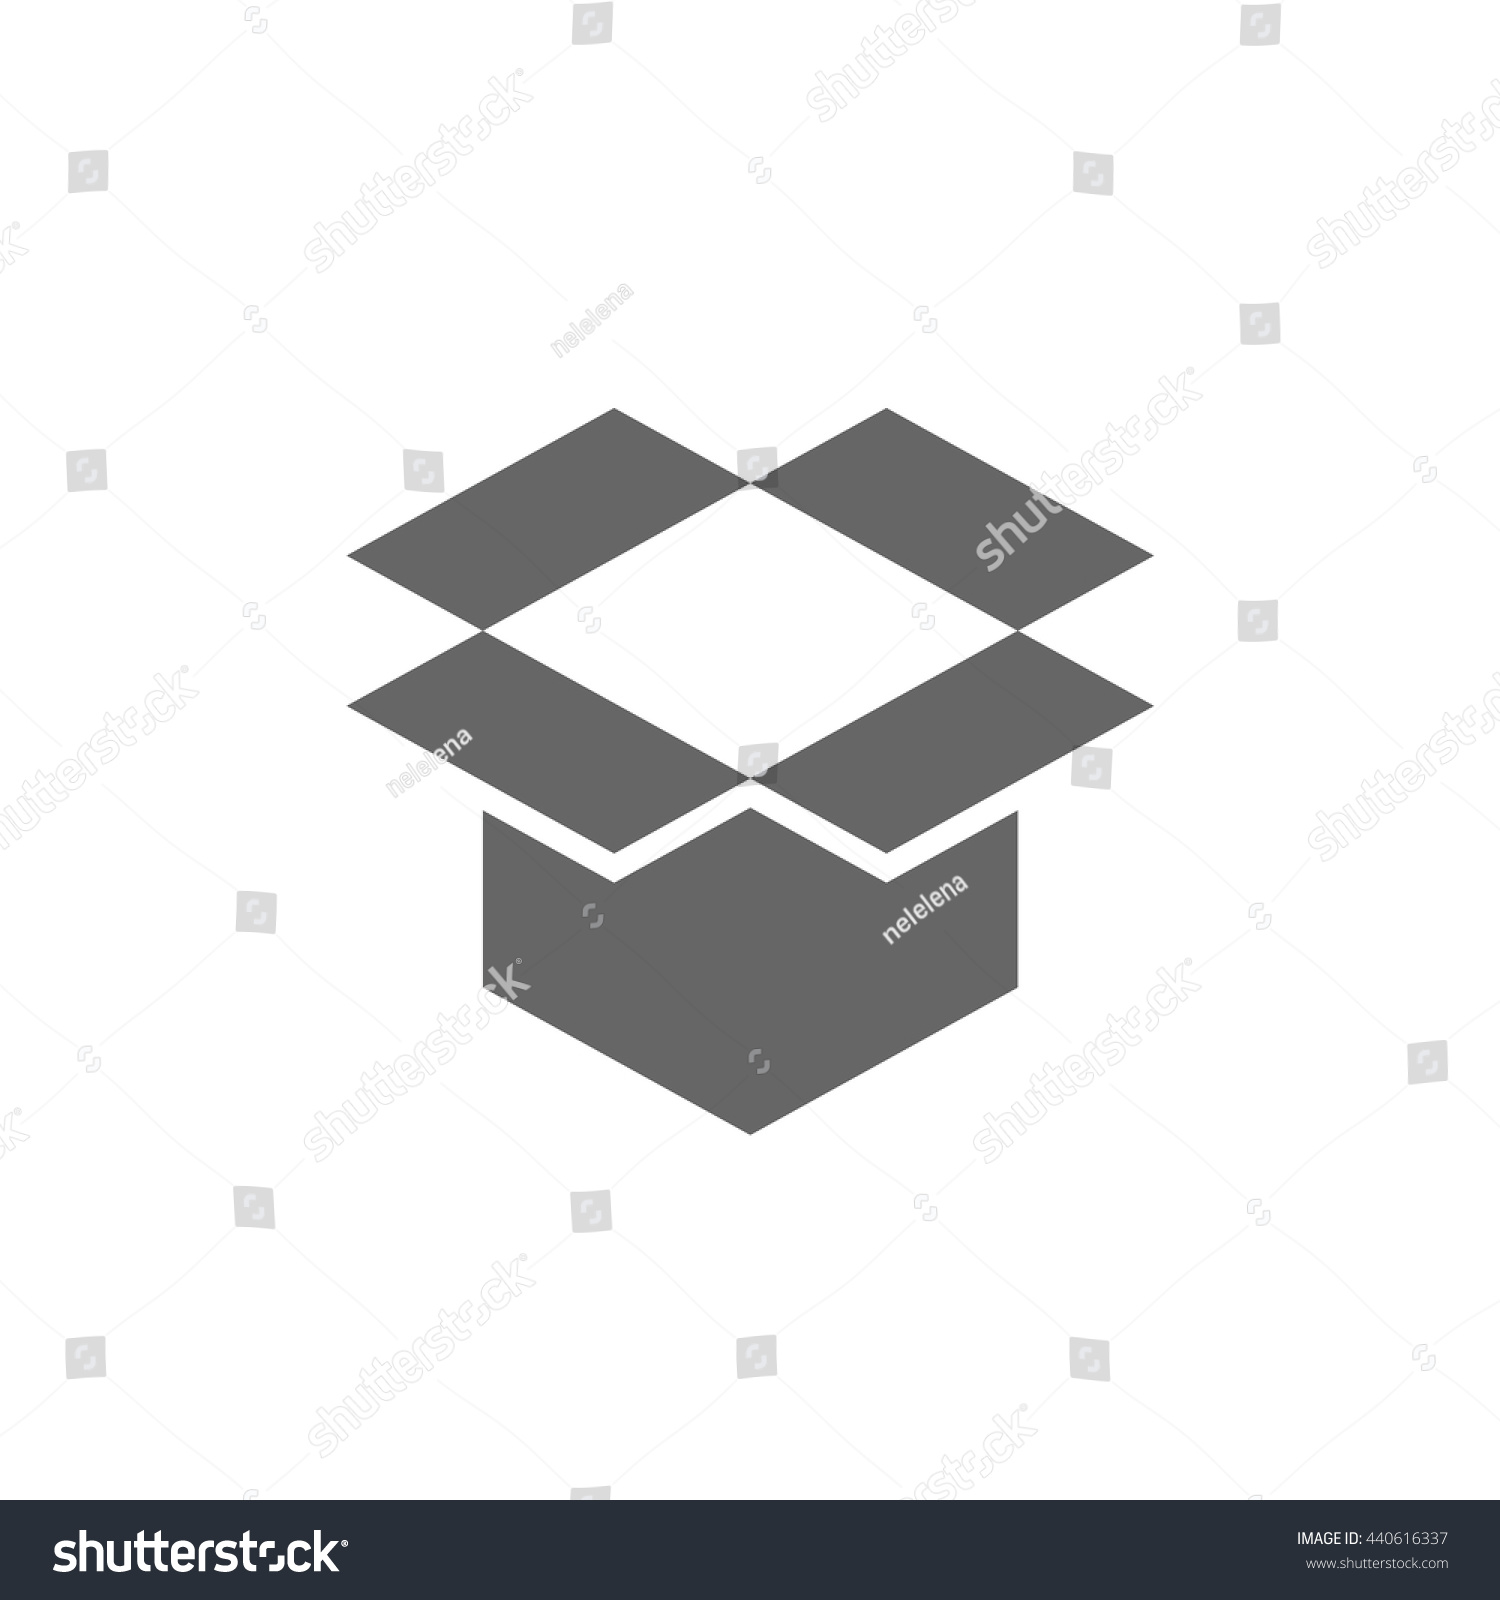 Open box symbol symbol packaging eps stock vector 440616337 open box symbol symbol of packaging eps vector illustration biocorpaavc Choice Image